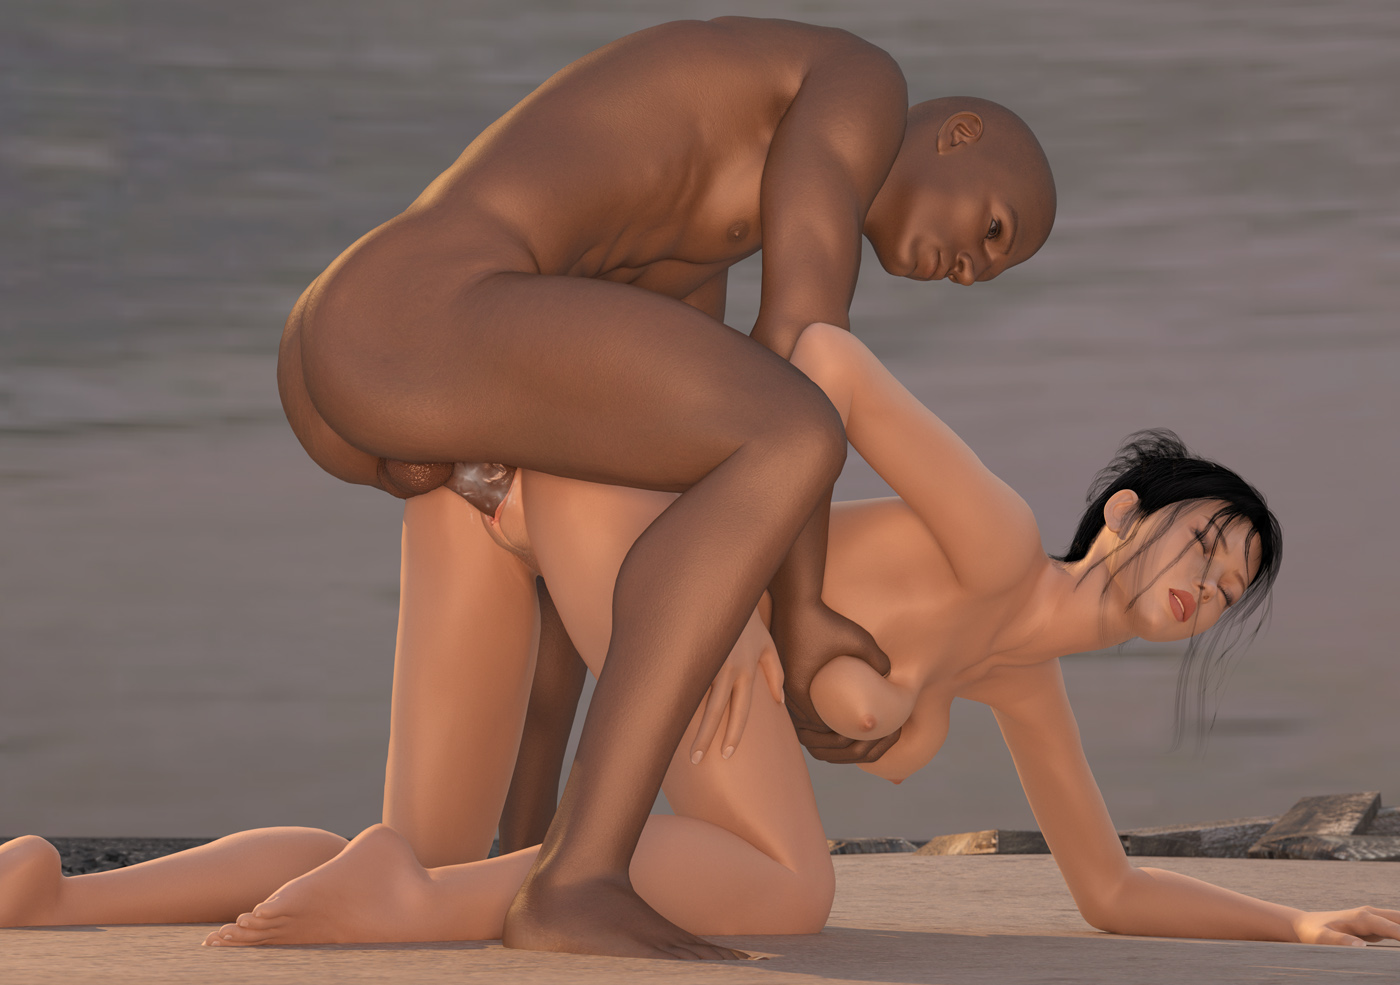 3d cartoon adult sites